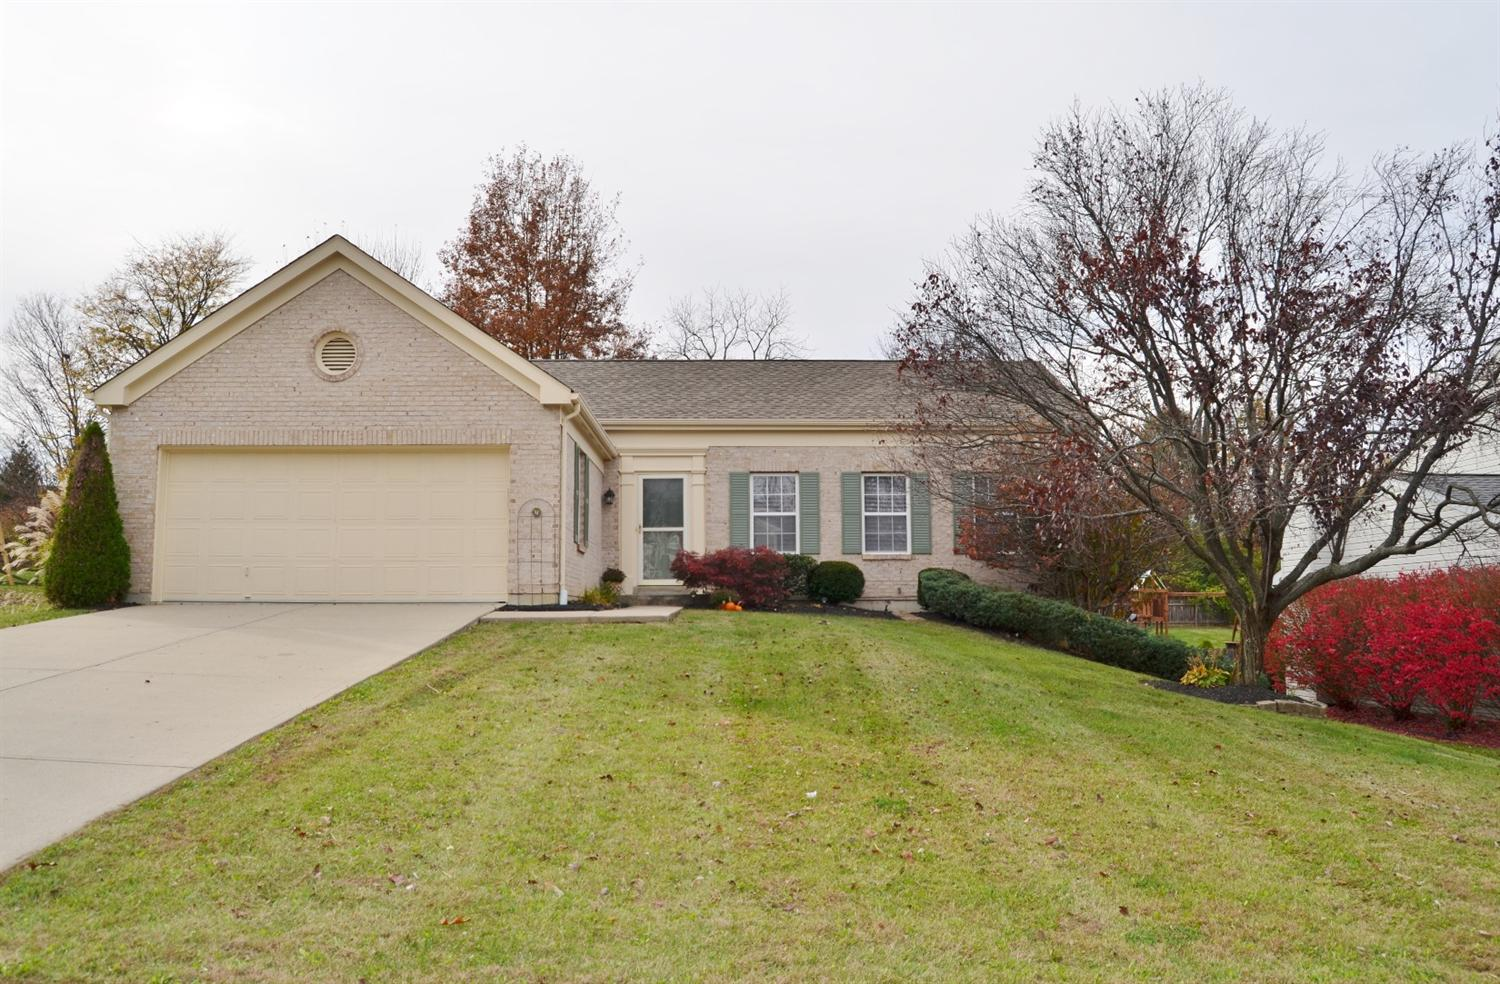 Photo 1 for 9991 Calava Ct Union, KY 41091